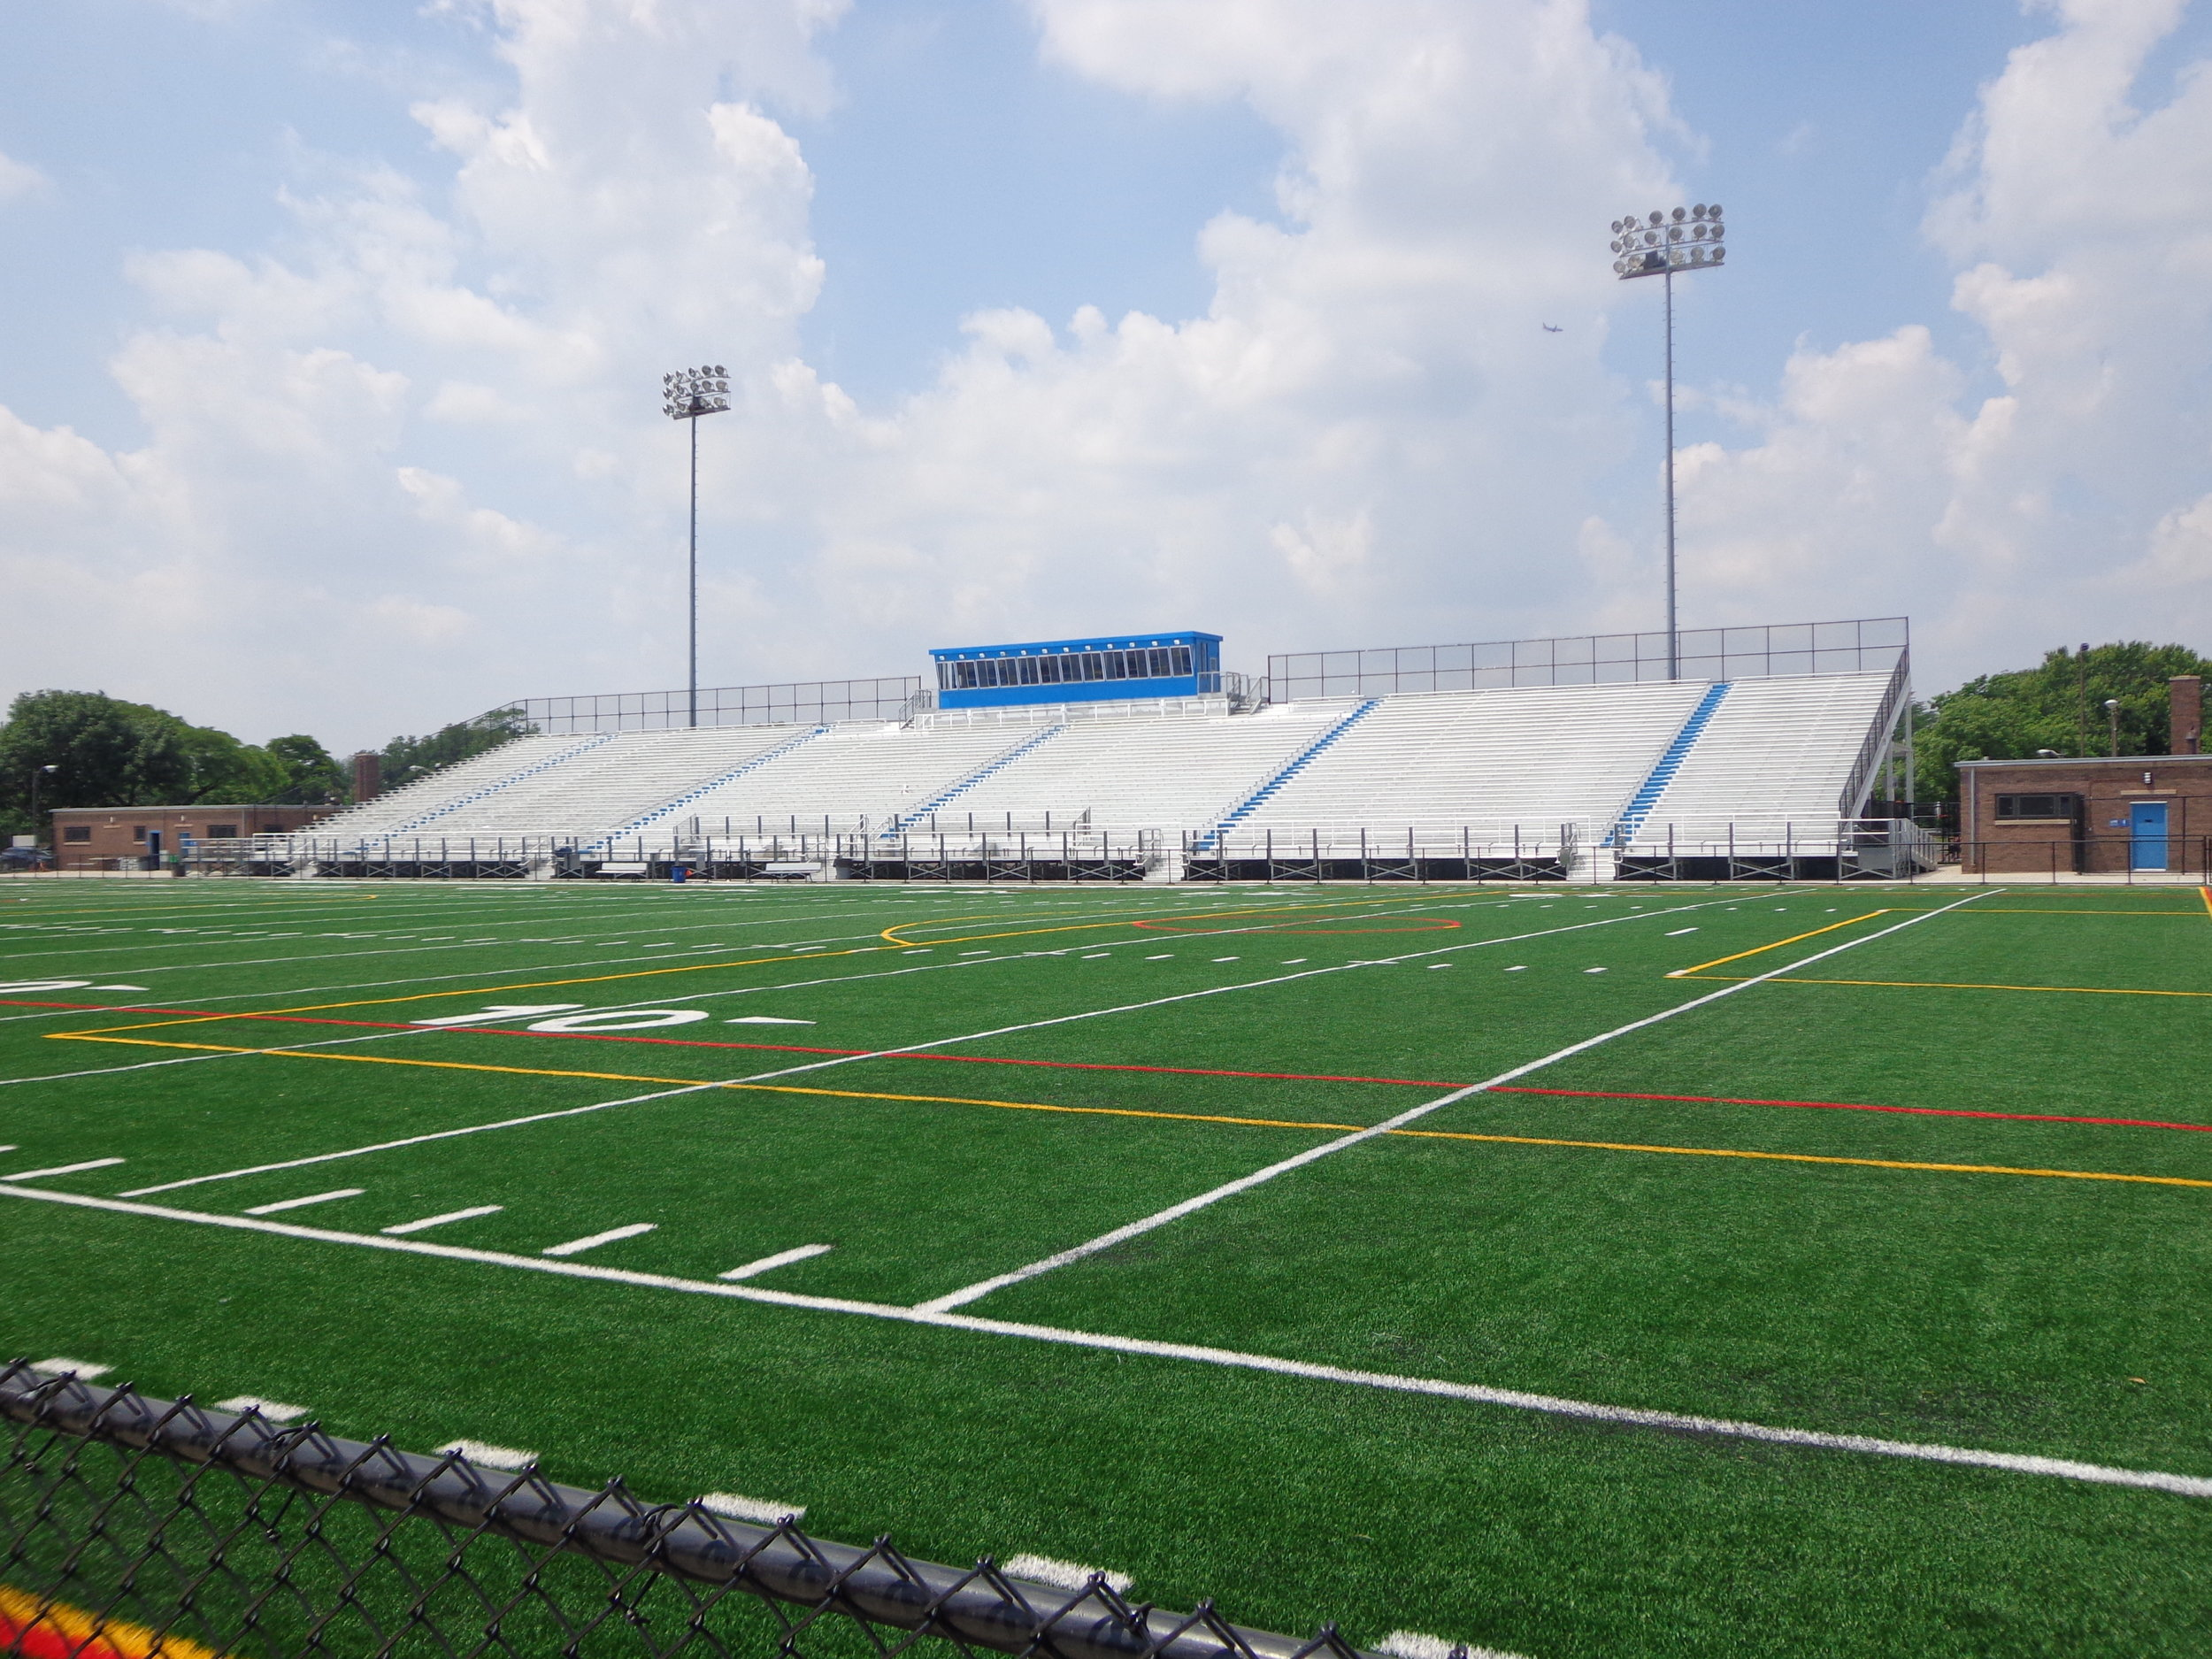 Gately Stadium, Pullman, IL where the All Schools Network Peace Rally will be held, June 7, 2019